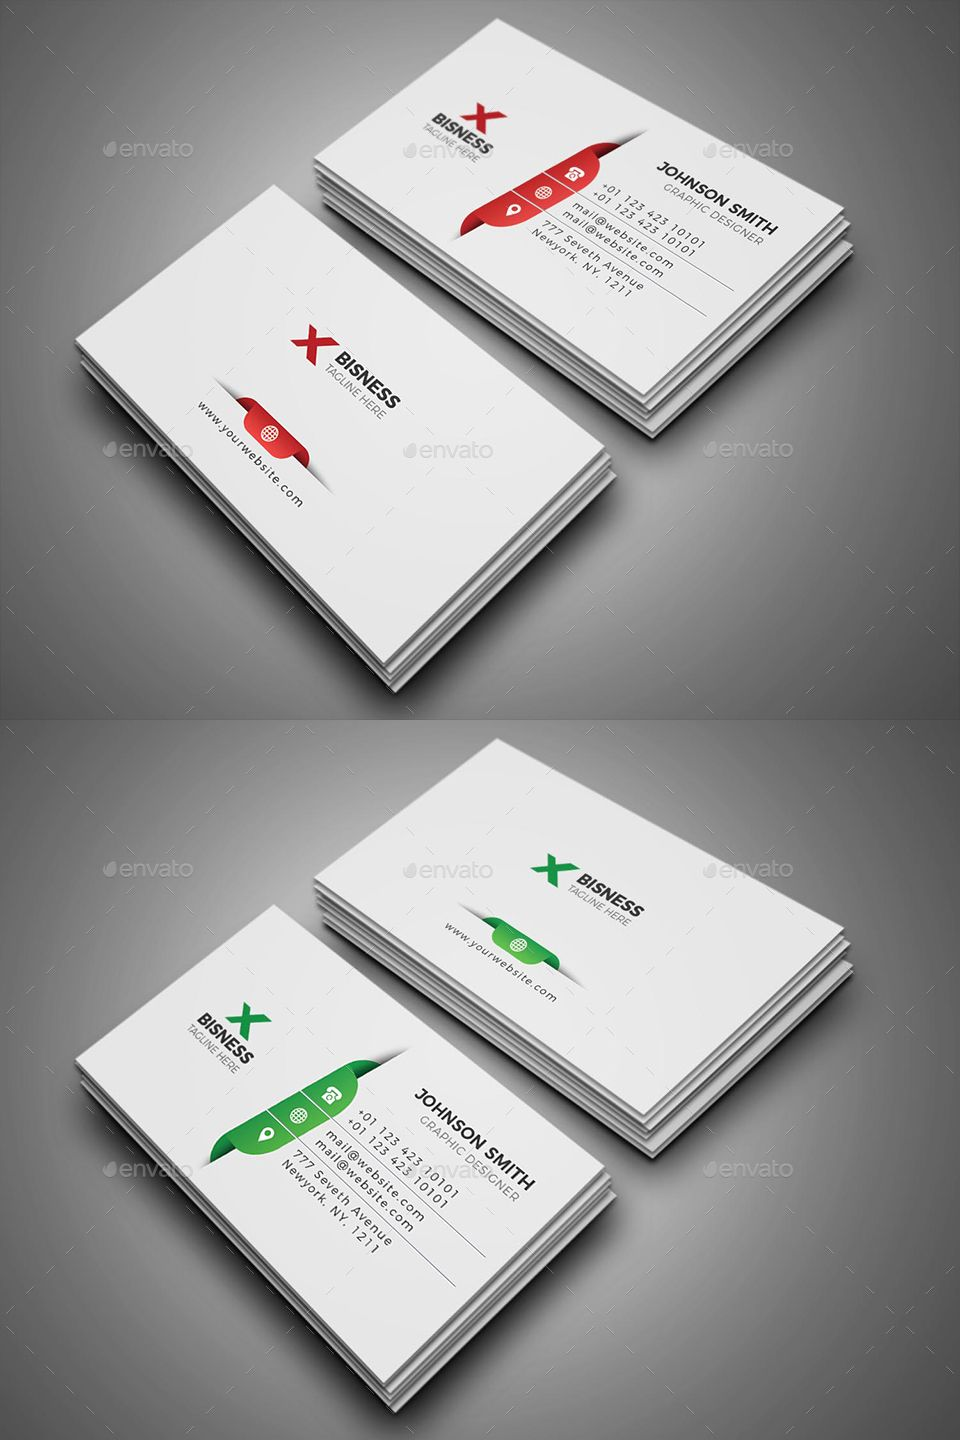 Business Cards In 2021 Business Card Design Card Design Buy Business Cards